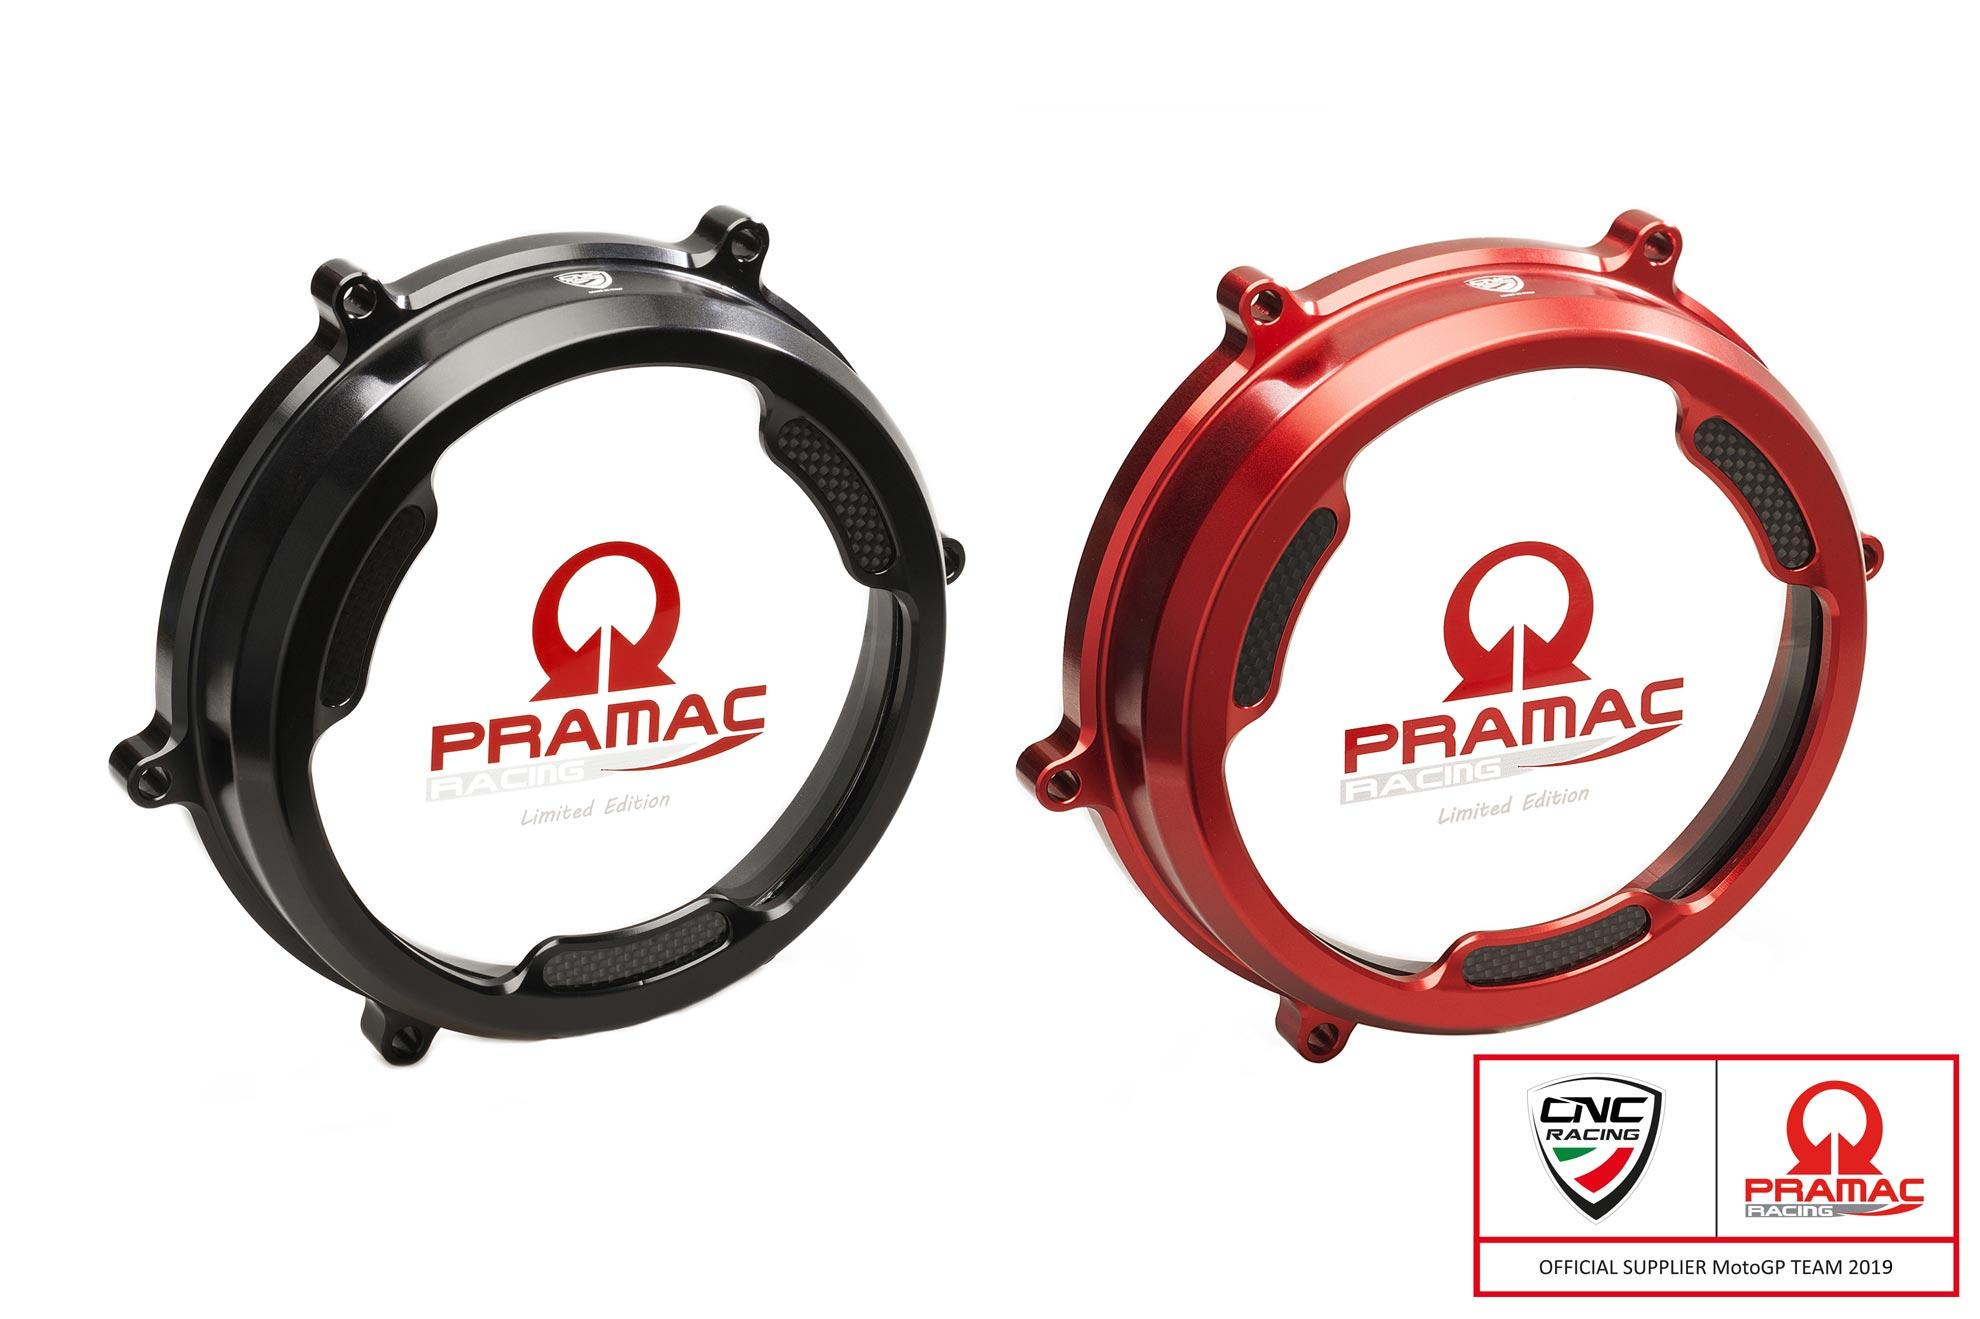 CNC Racing Pramac Clutch Cover - Panigale V2, Clutch Cover, CNC Racing - Averys Motorcycles